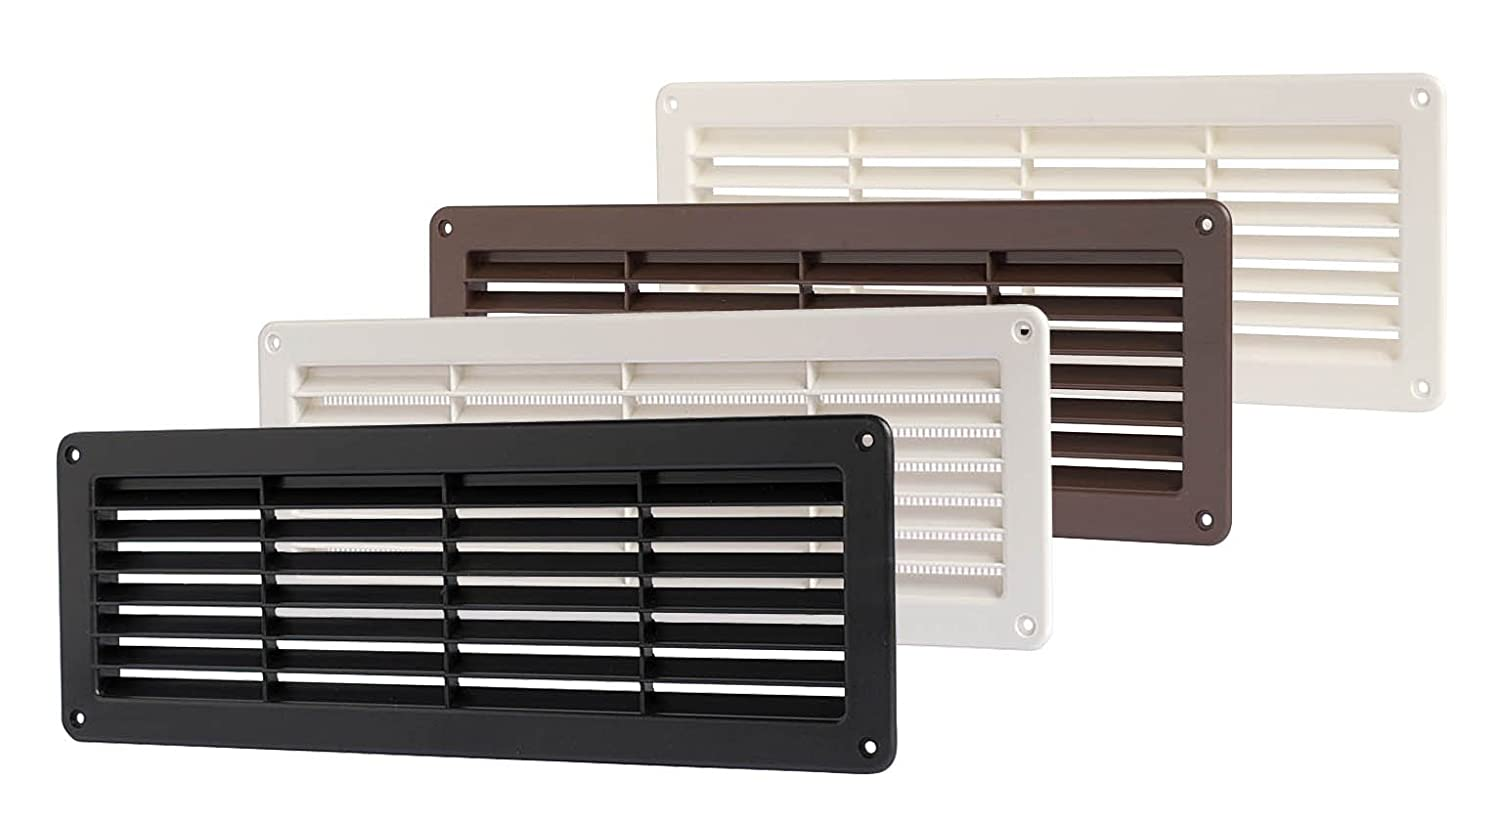 FLUSH FITTING RECTANGULAR PLASTIC AIR VENT WITH INSECT / MOSQUITO NET 370mm x 130mm x 20mm available in WHITE BROWN BLACK Suitable for internal an external use. (Black) VecamCo